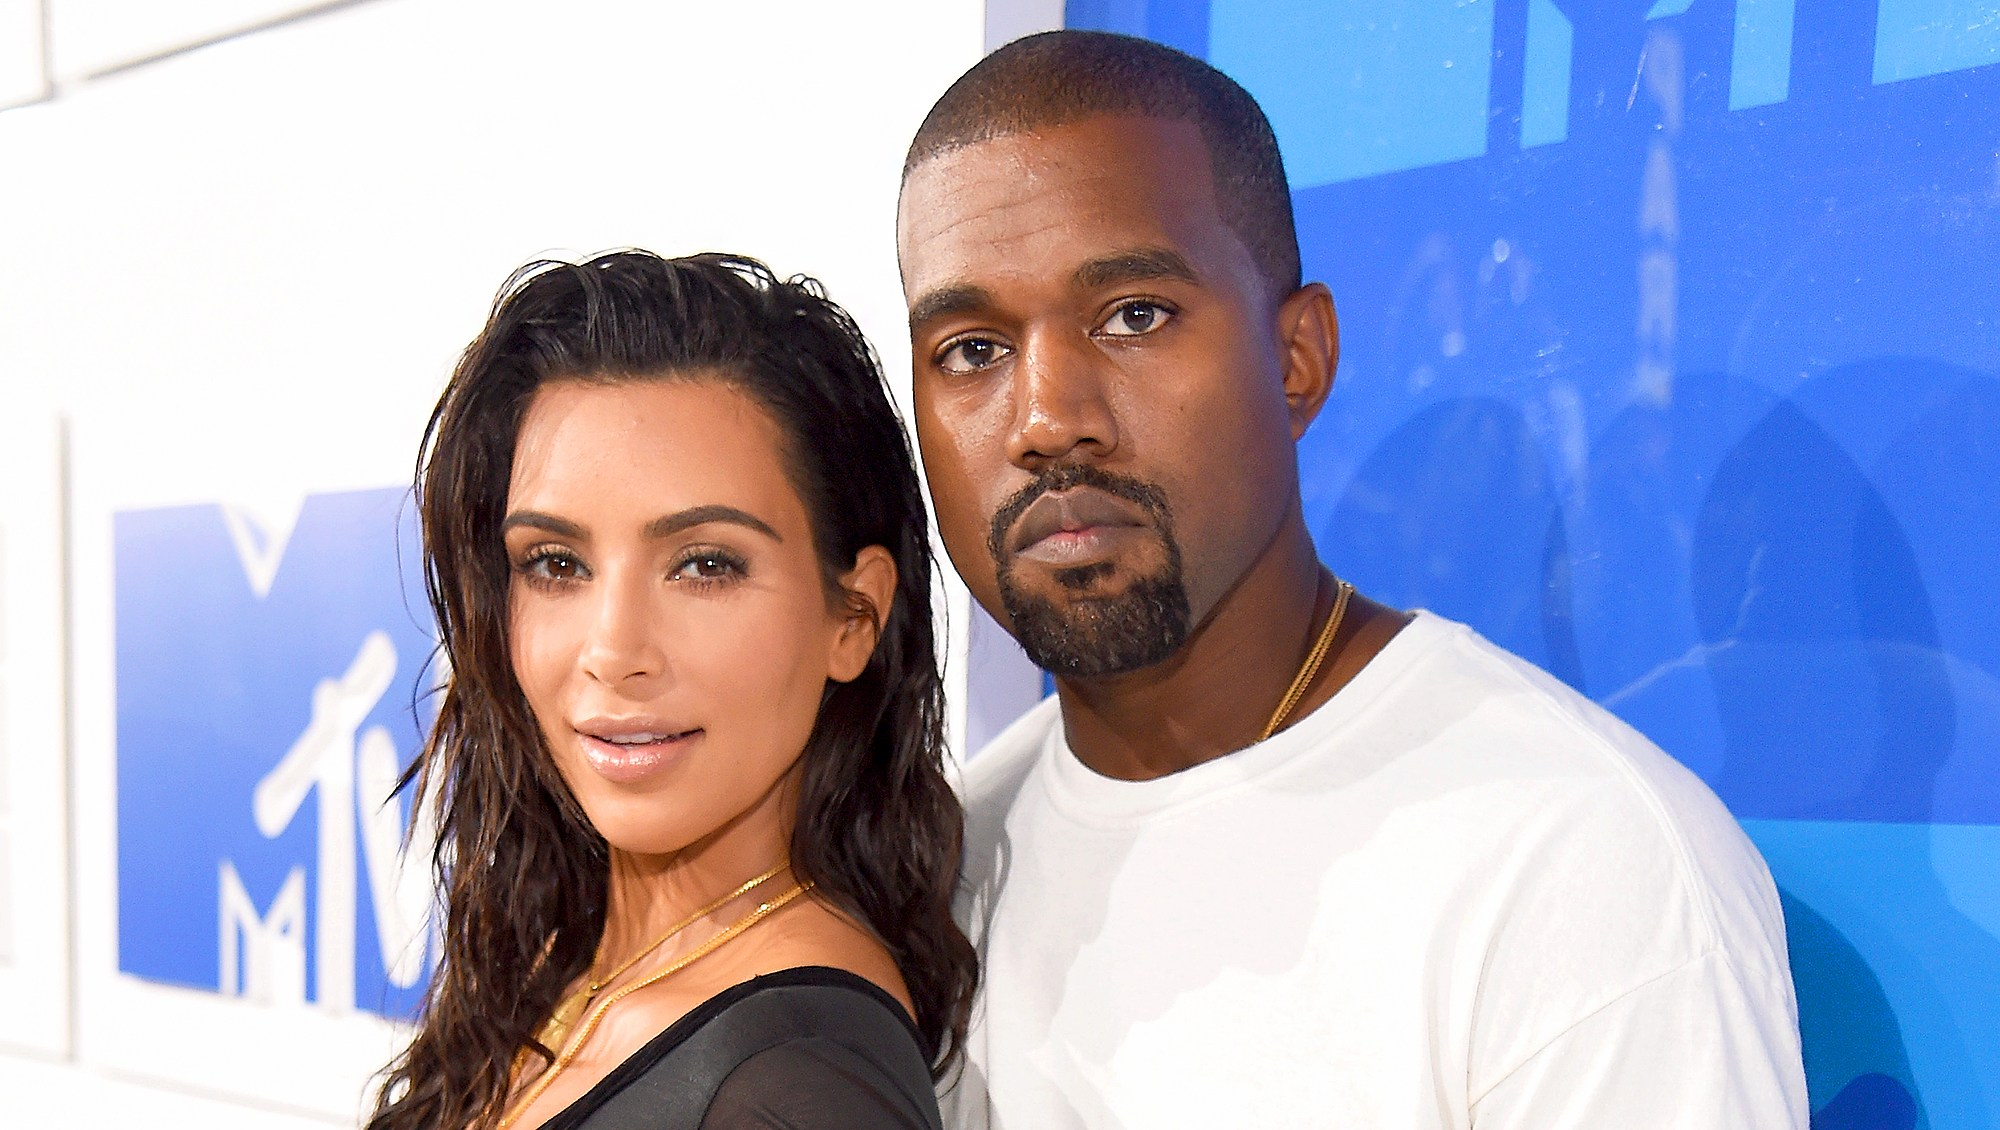 Kim Kardashian and Kanye West attends the 2016 MTV Video Music Awards in New York City.